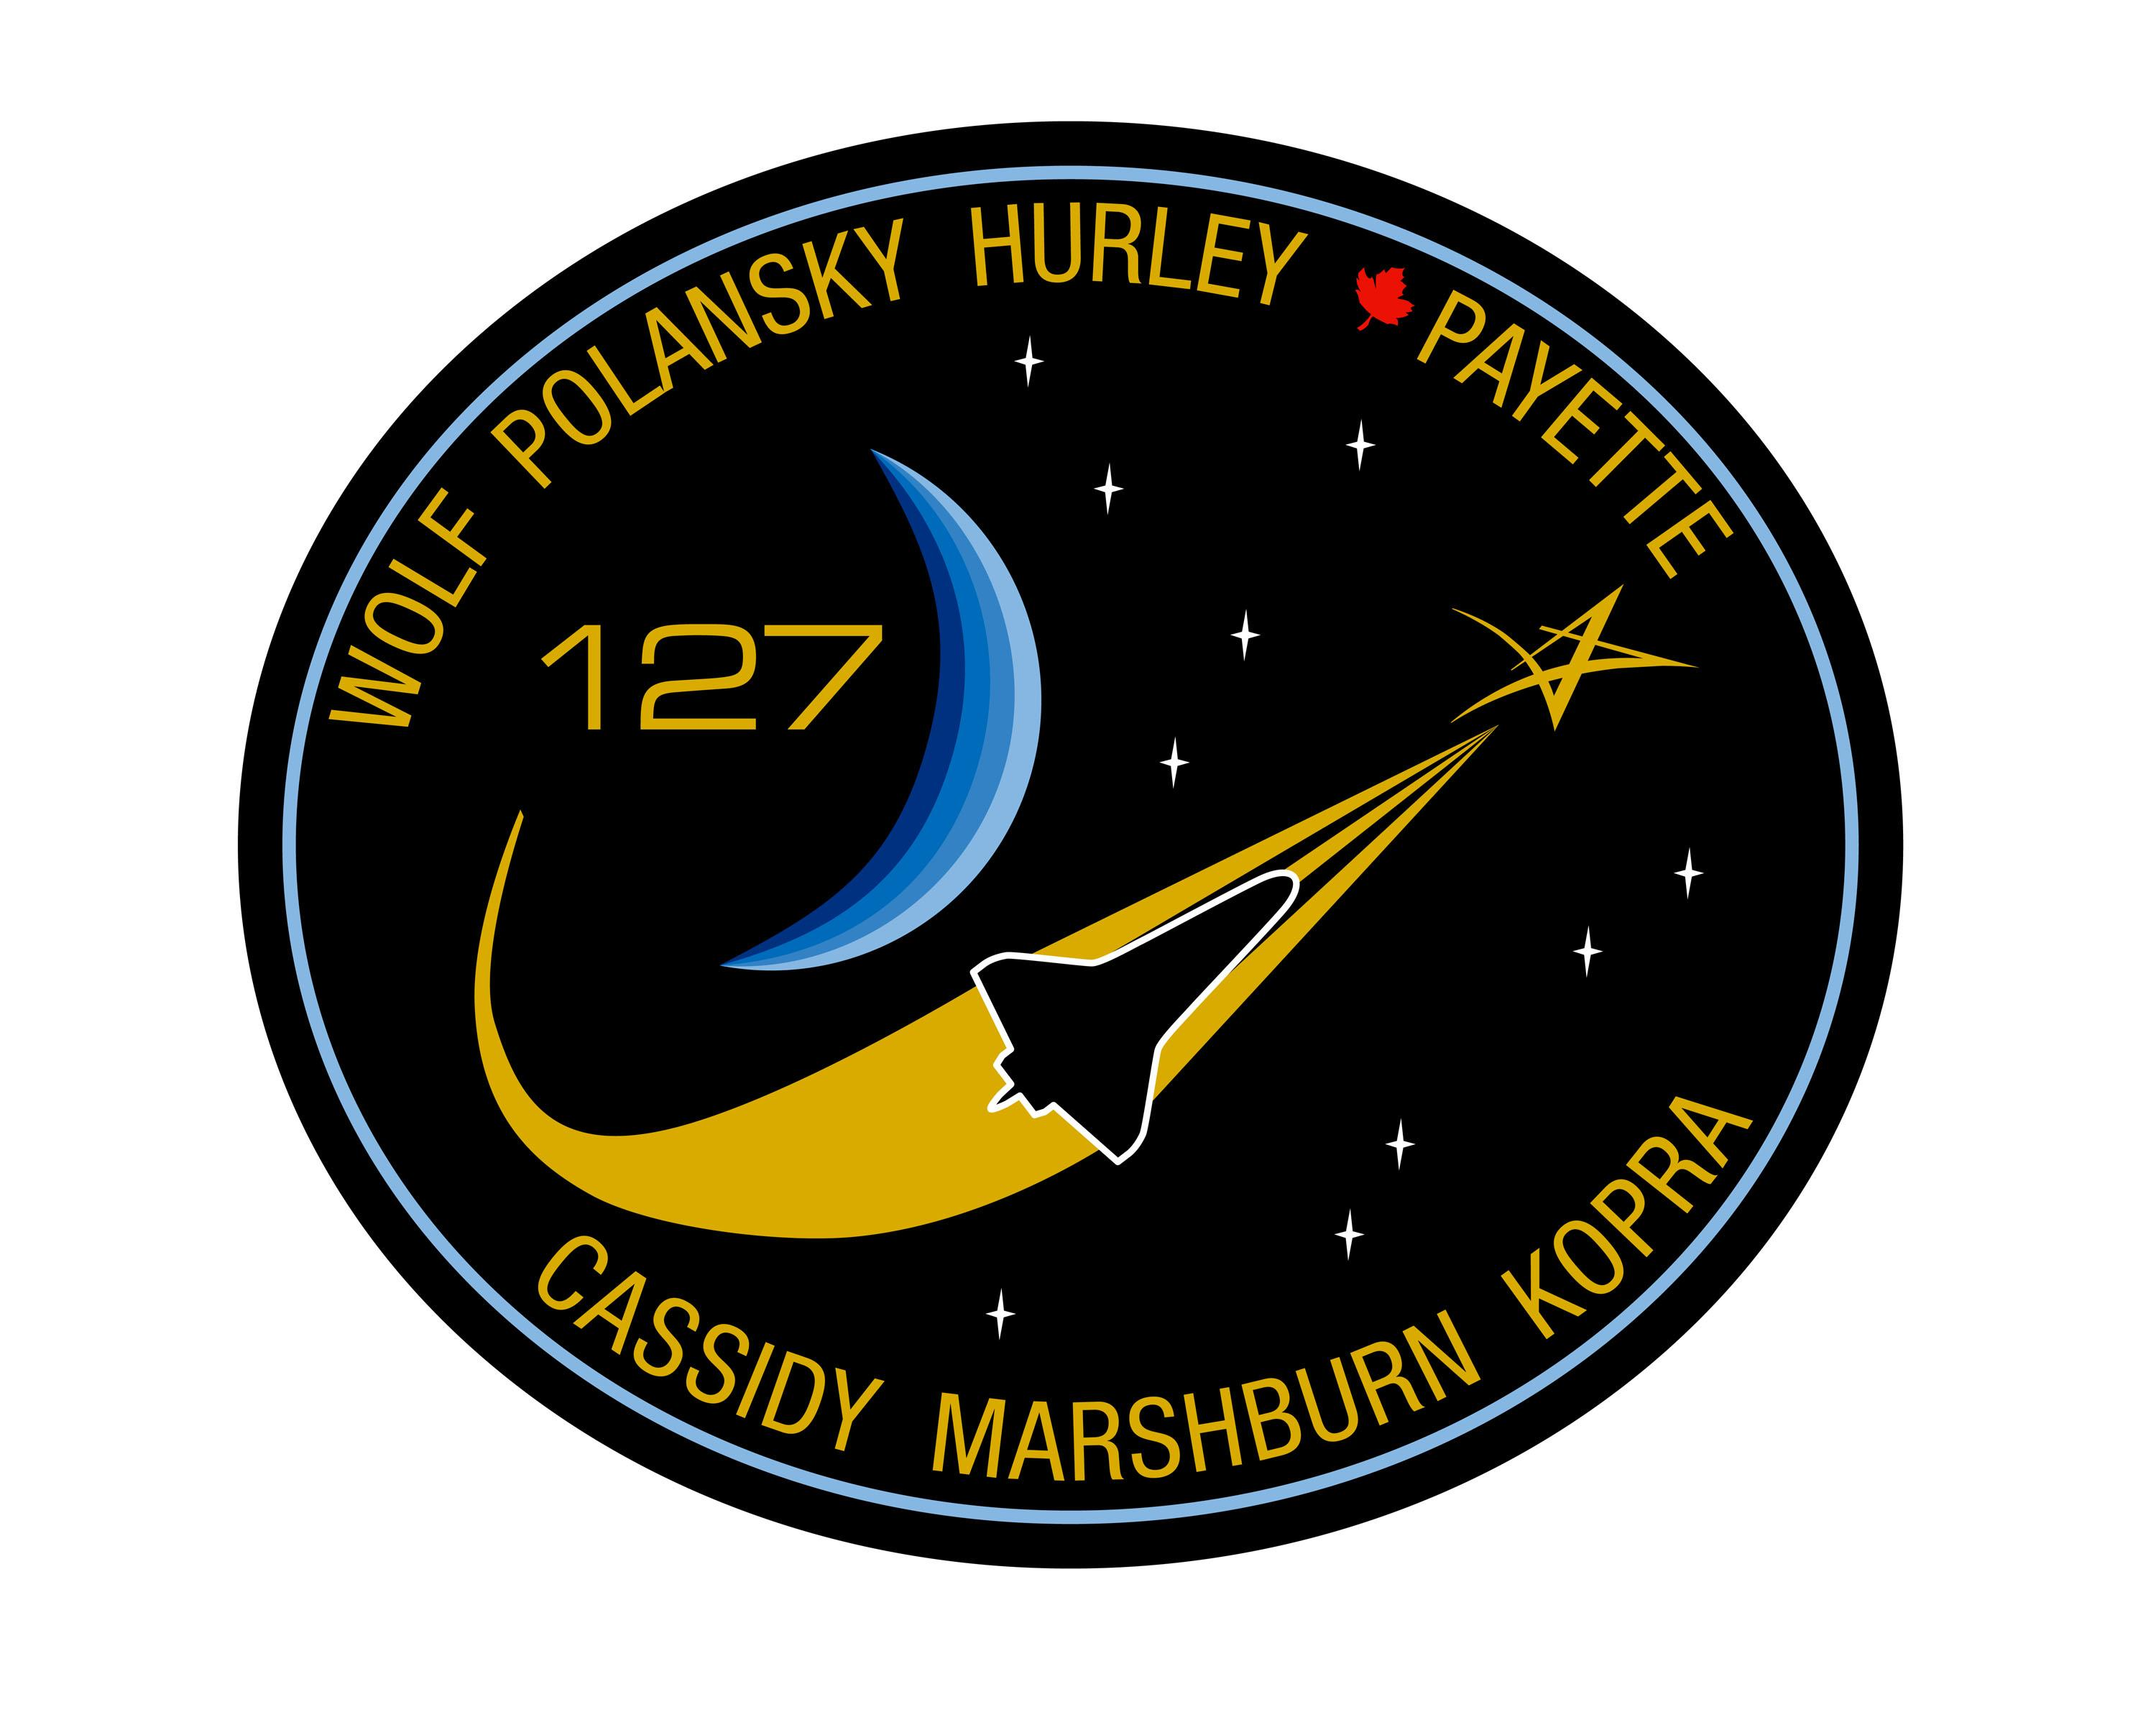 cooper space mission patches - photo #27